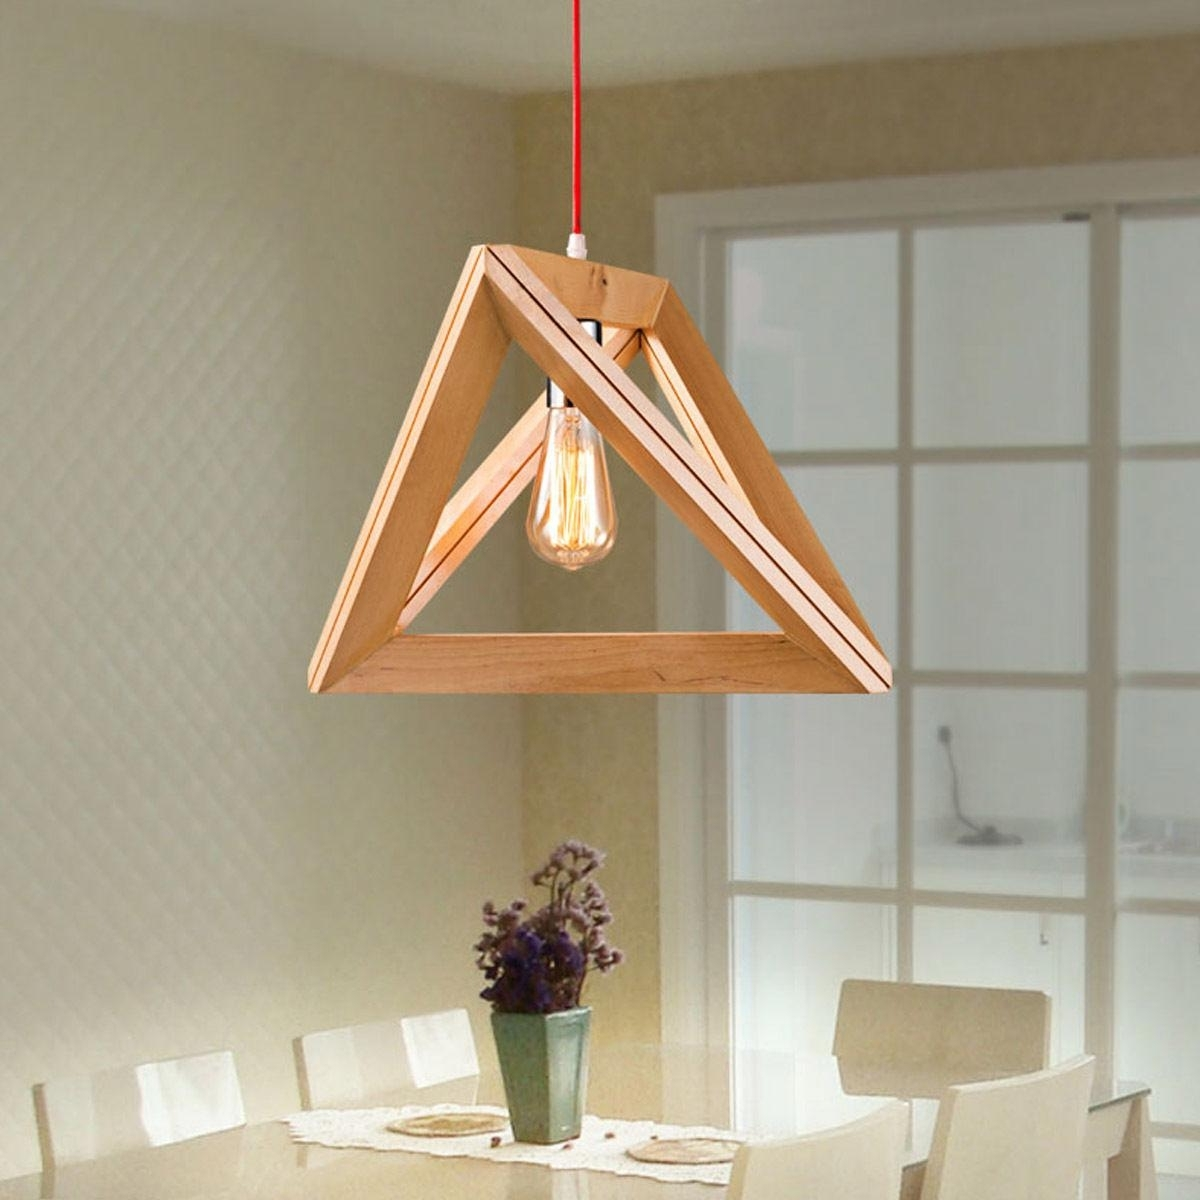 Most Recently Released Wooden Chandeliers Regarding New Modern Art Wooden Ceiling Light Pendant Lamp Lighting Light Wood (View 6 of 15)